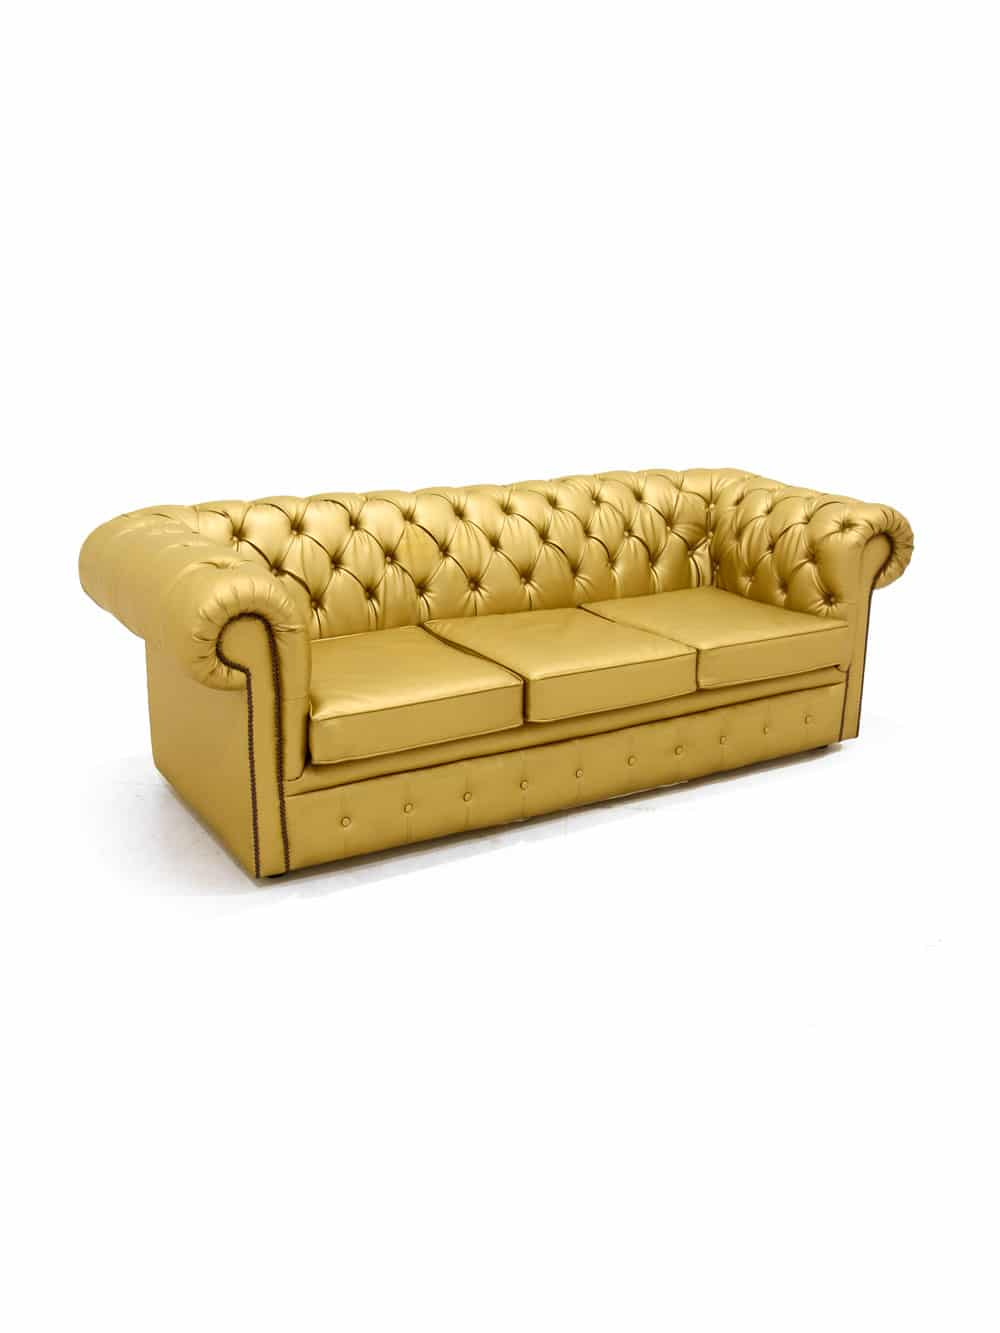 Gold Chesterfield Sofa Three Seater | Event Prop Hire